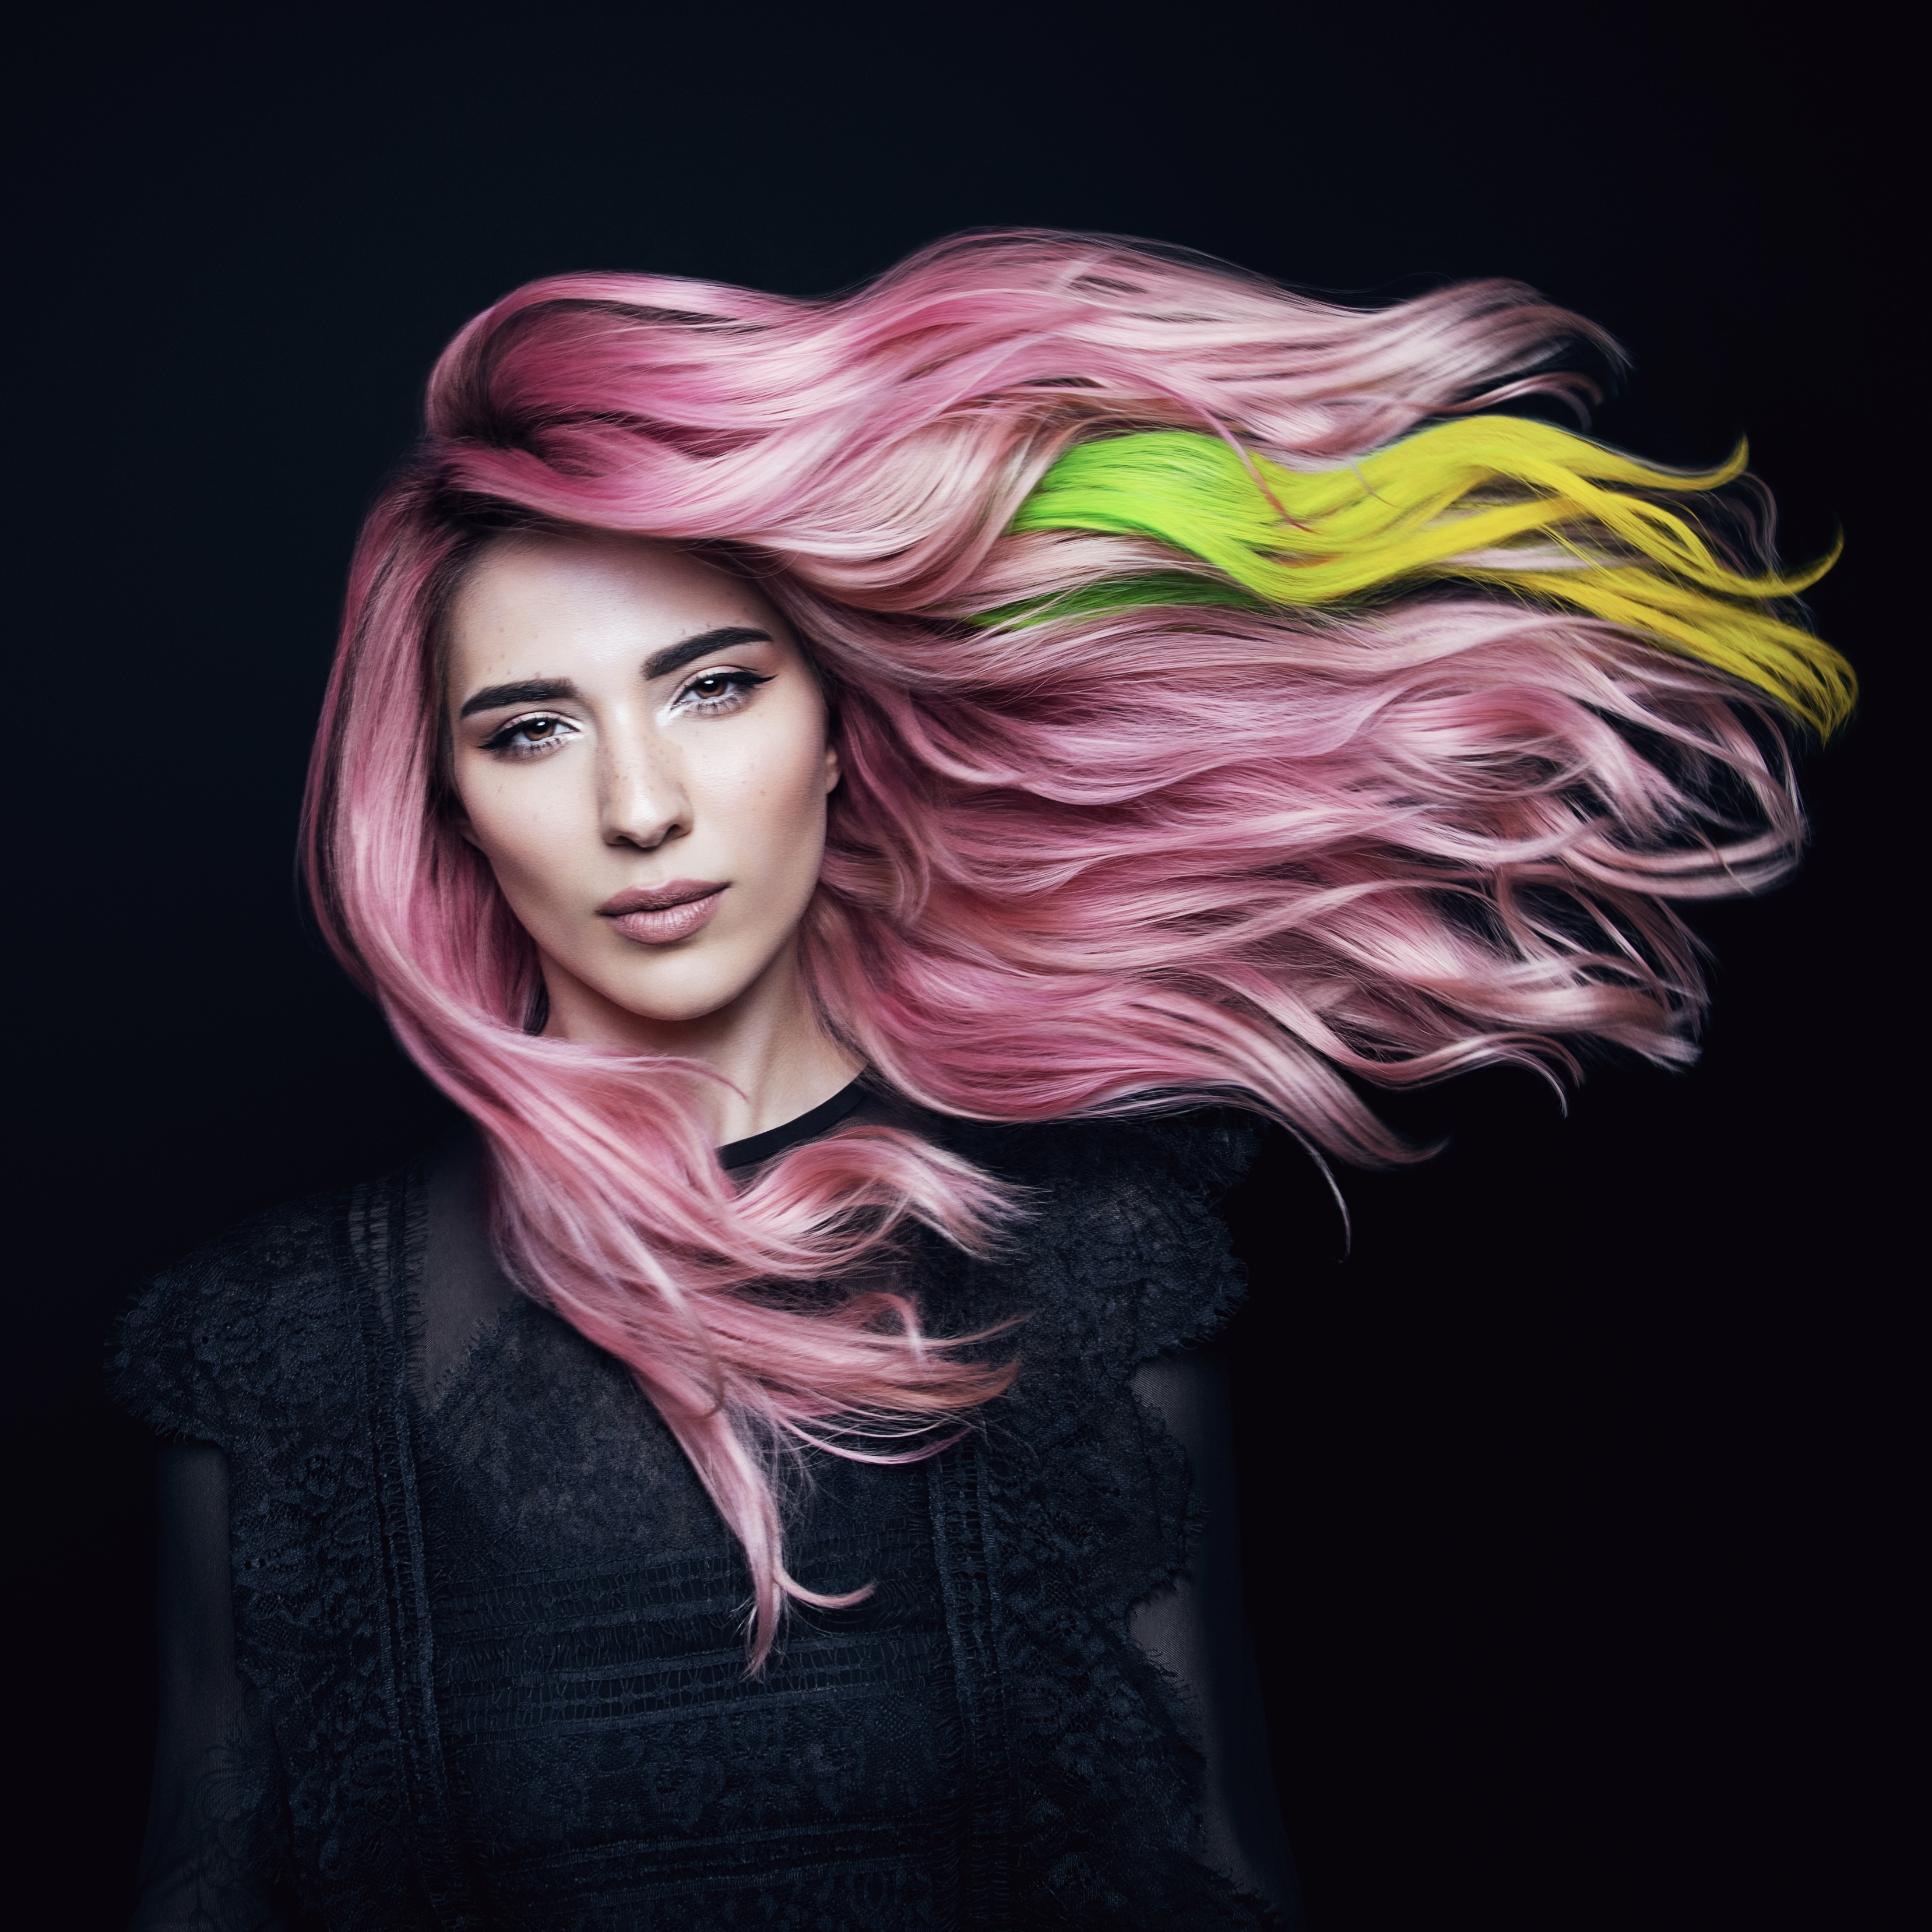 VIVIDS Mood Color in Lime Green to Sunny Yellow transforming shade shown here. Pravana